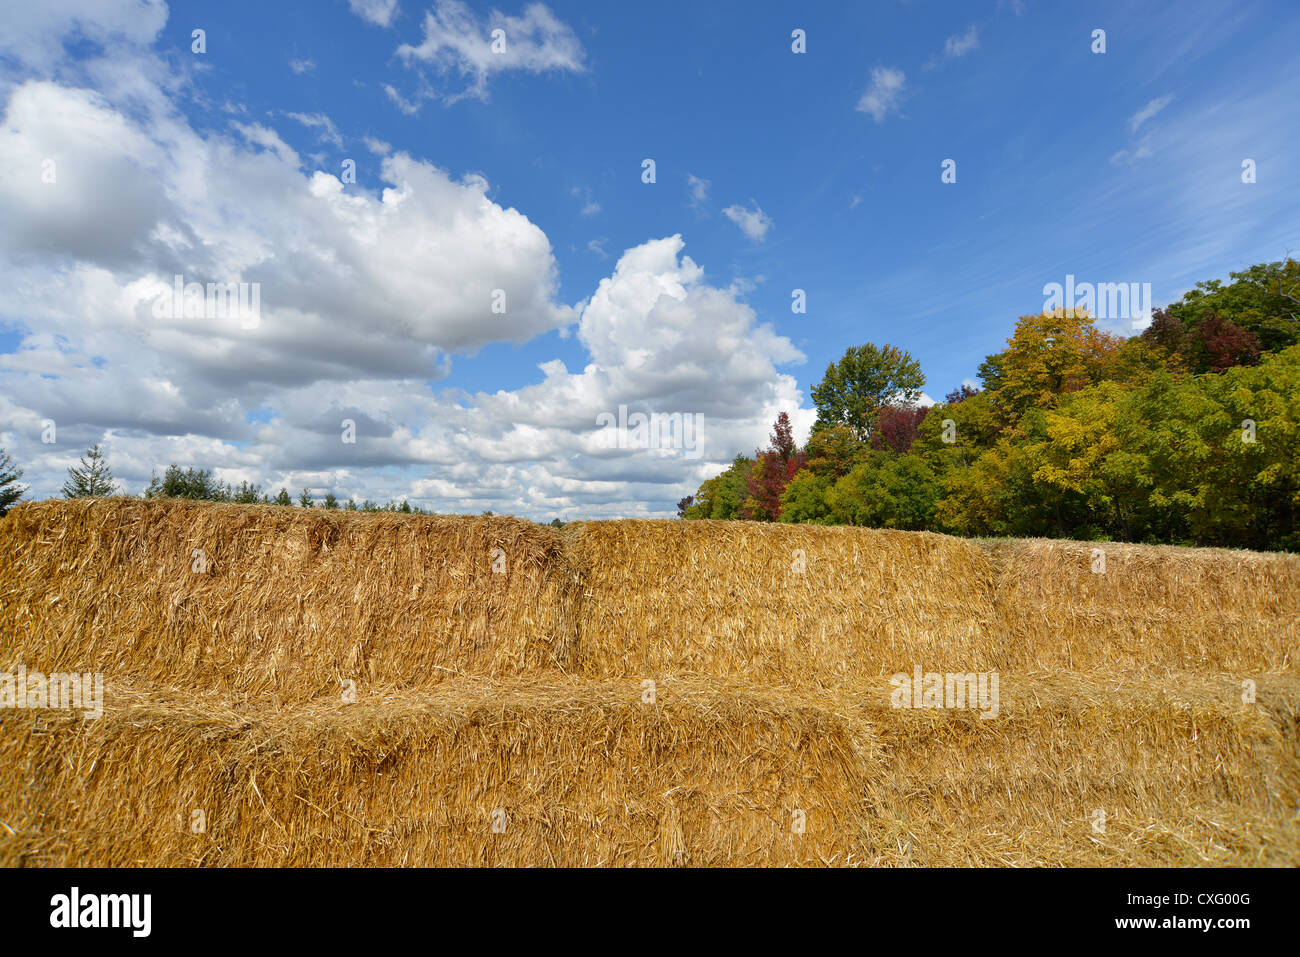 Hay bails in a field - Stock Image